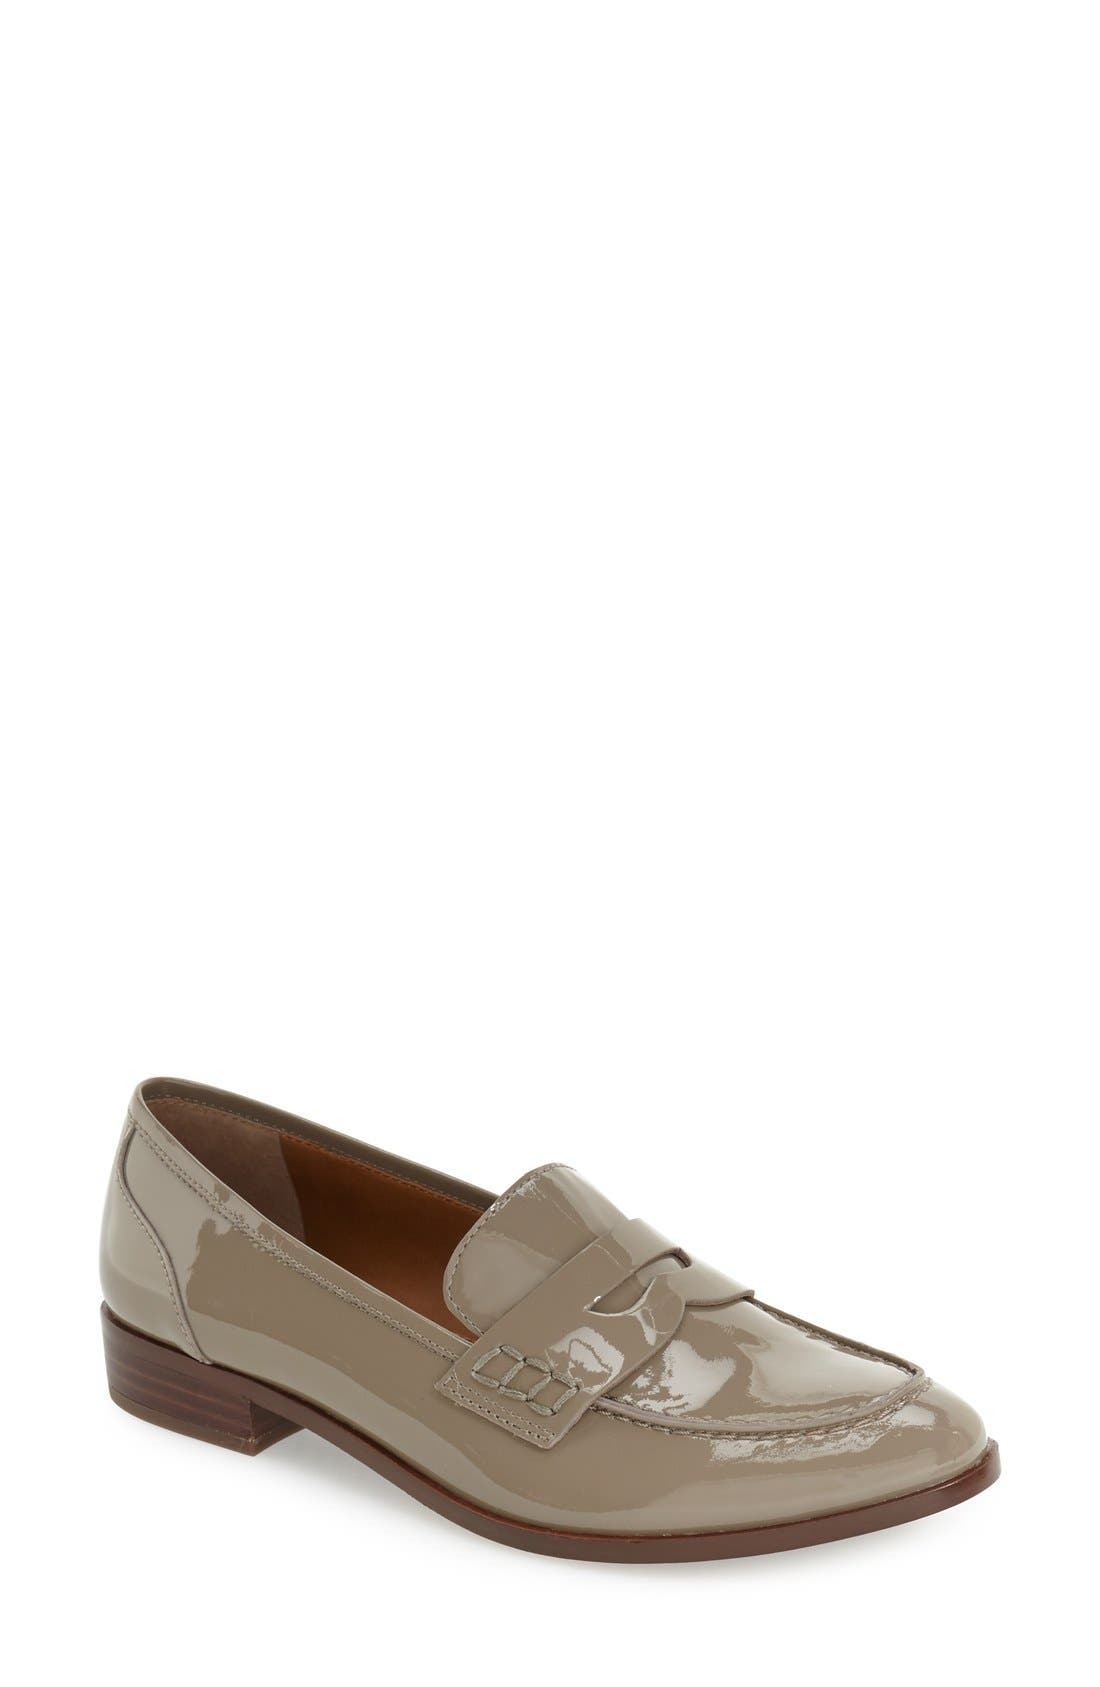 Alternate Image 1 Selected - SARTO by Franco Sarto 'Jolette' Penny Loafer (Women)